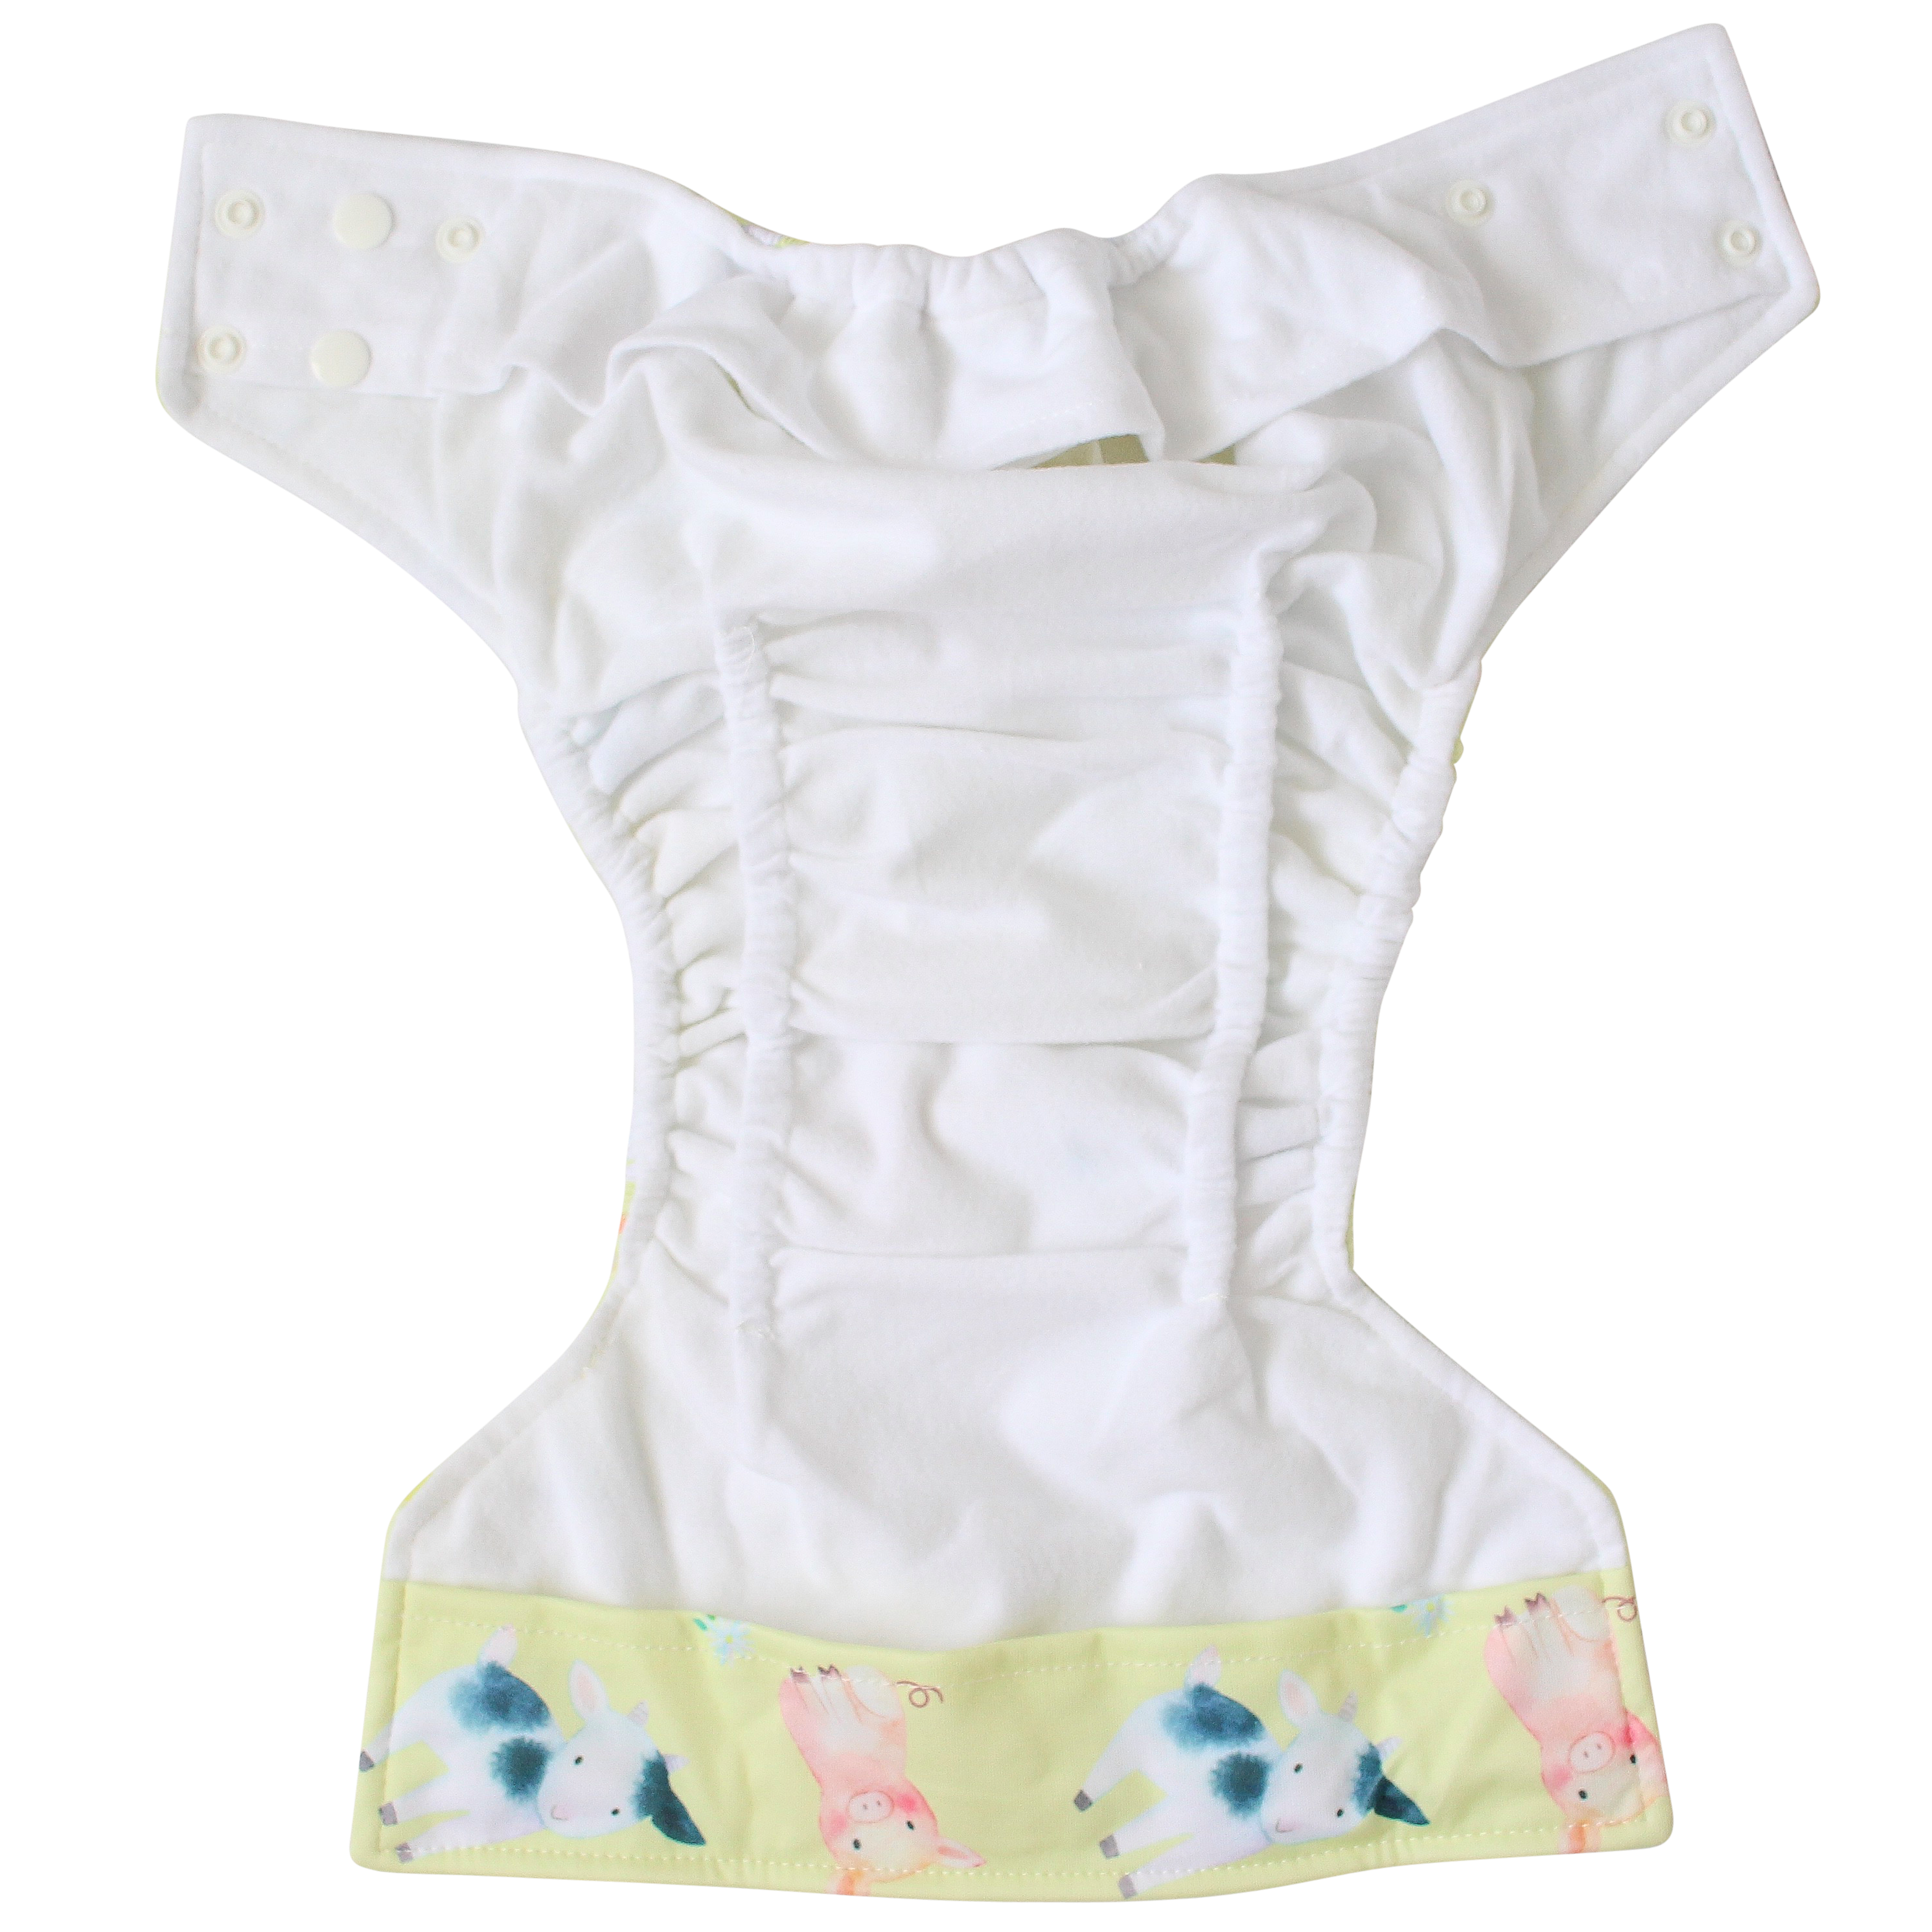 Aussie Birds OSFM Nappy - Boho Babes Cloth Nappies